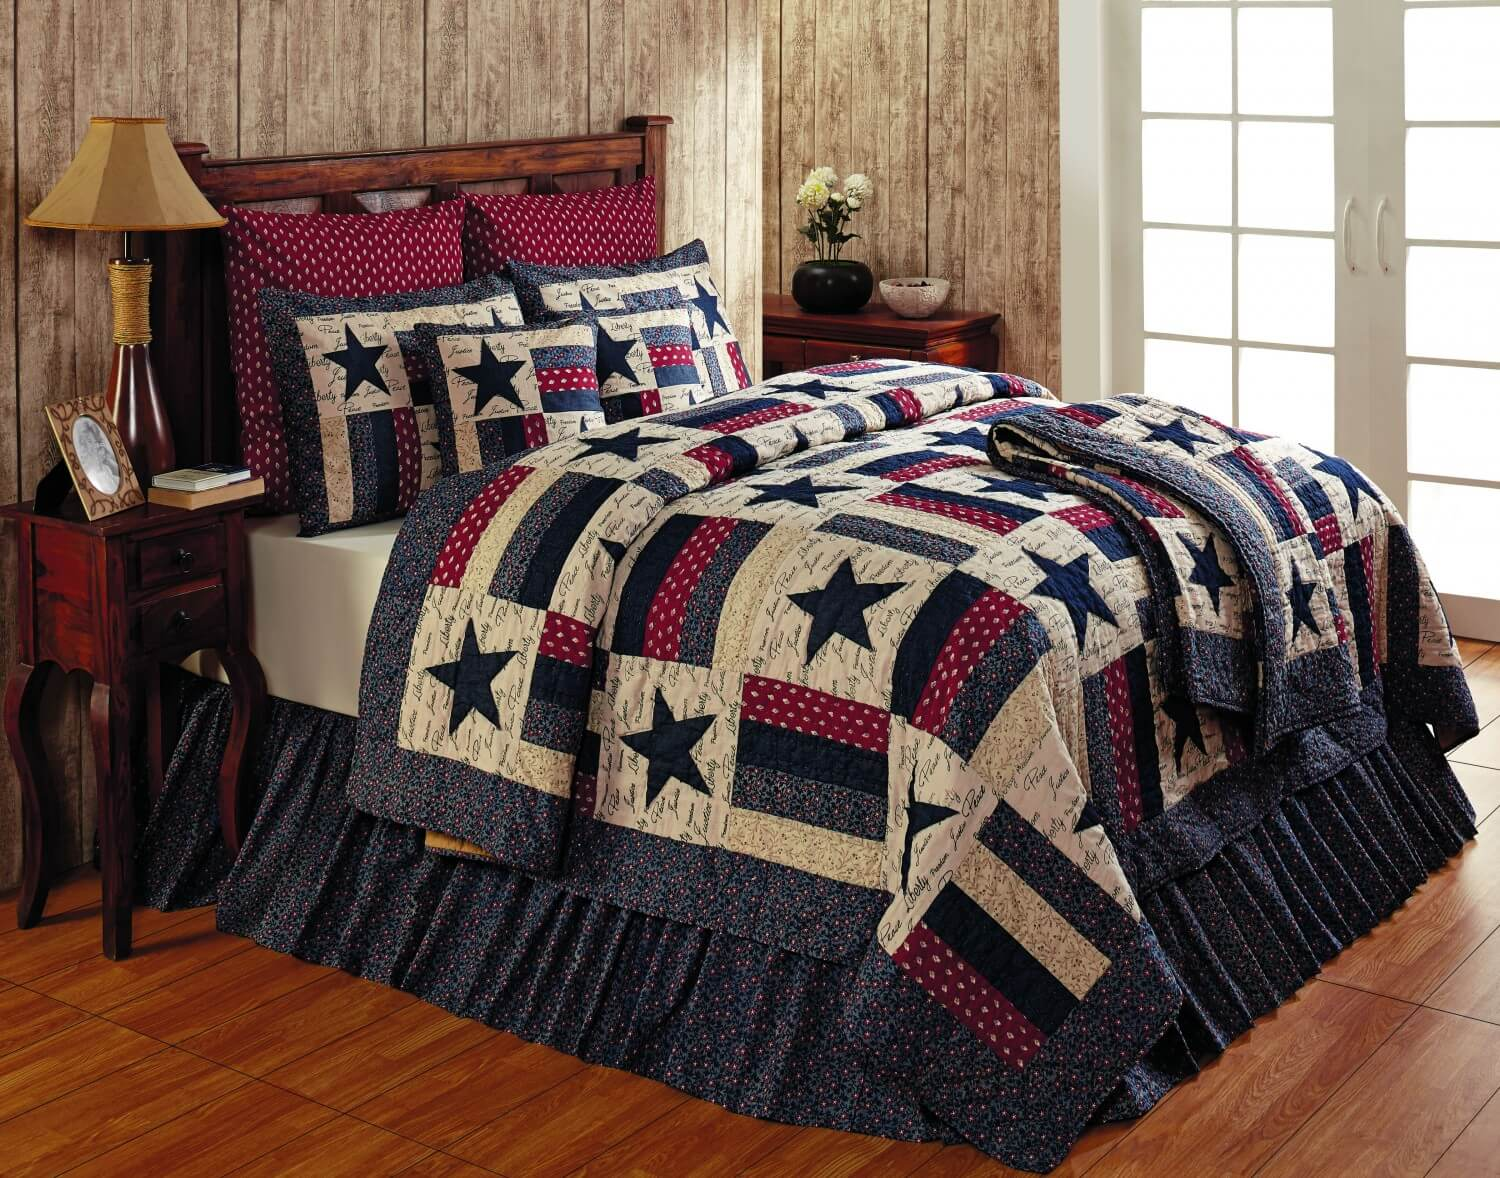 bedspread cotton quilted quilts and by cover bedding linens white queen crib black quilt